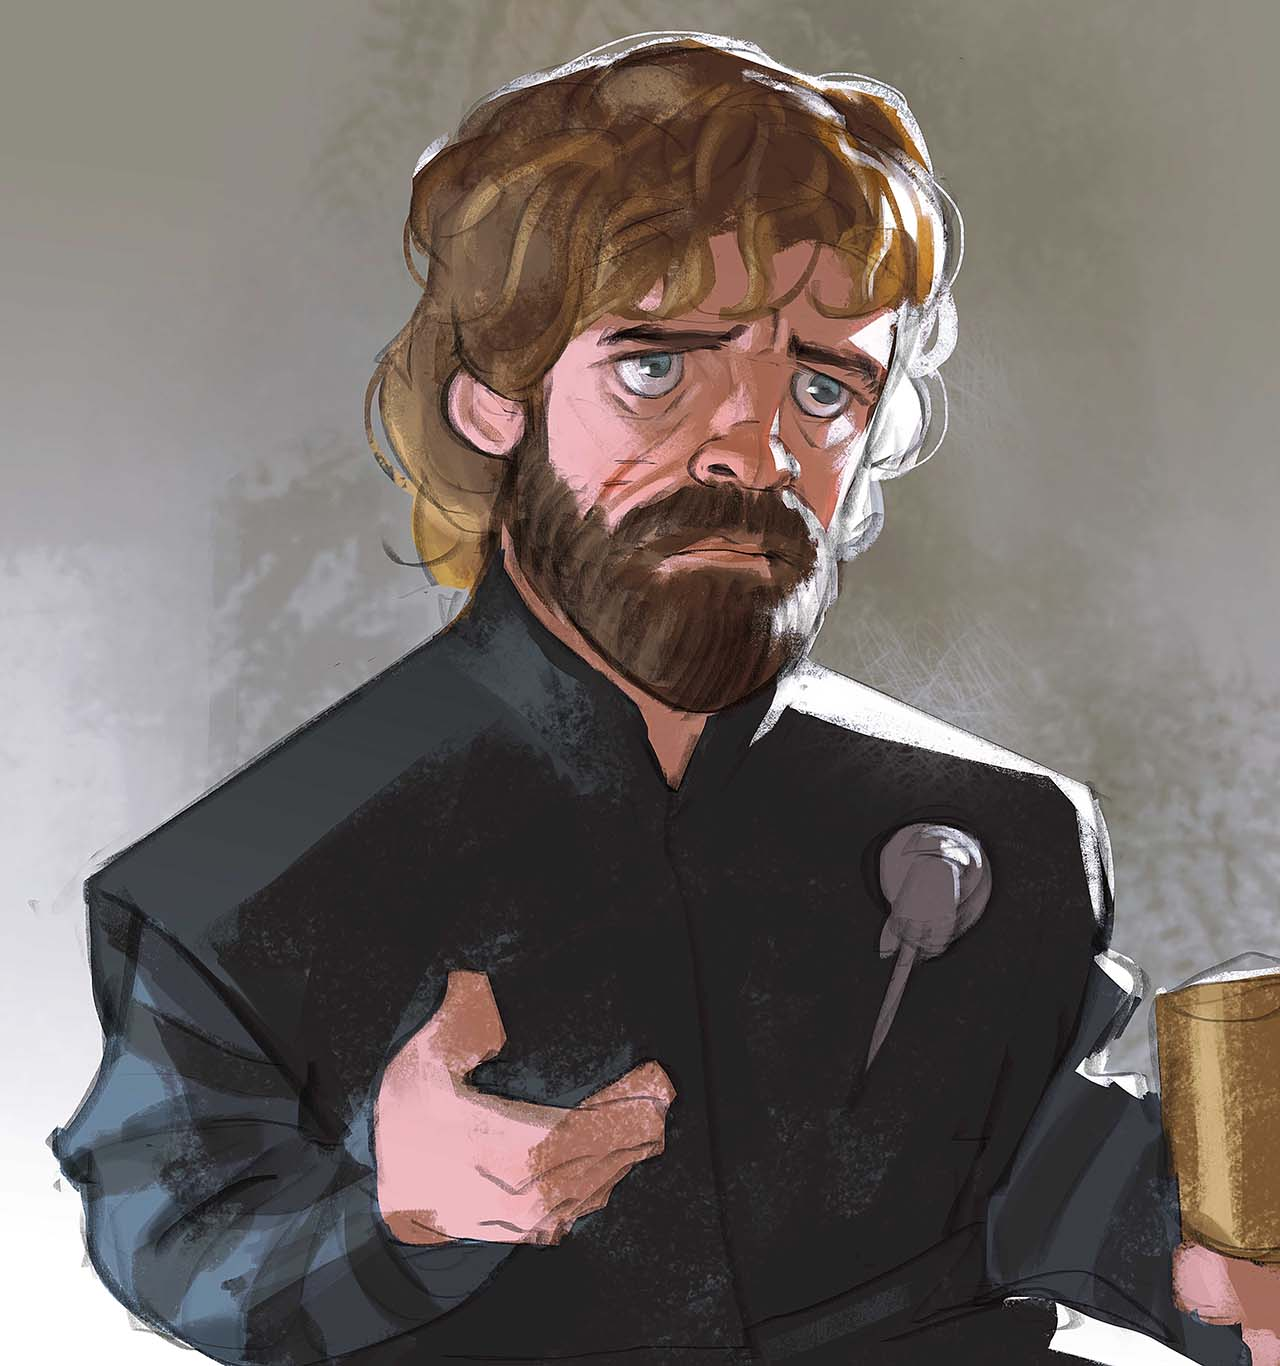 Artist Creates Unique Character Arts From Game Of Thrones – Tyrion Lannister Character Art By Ramón Nuñez